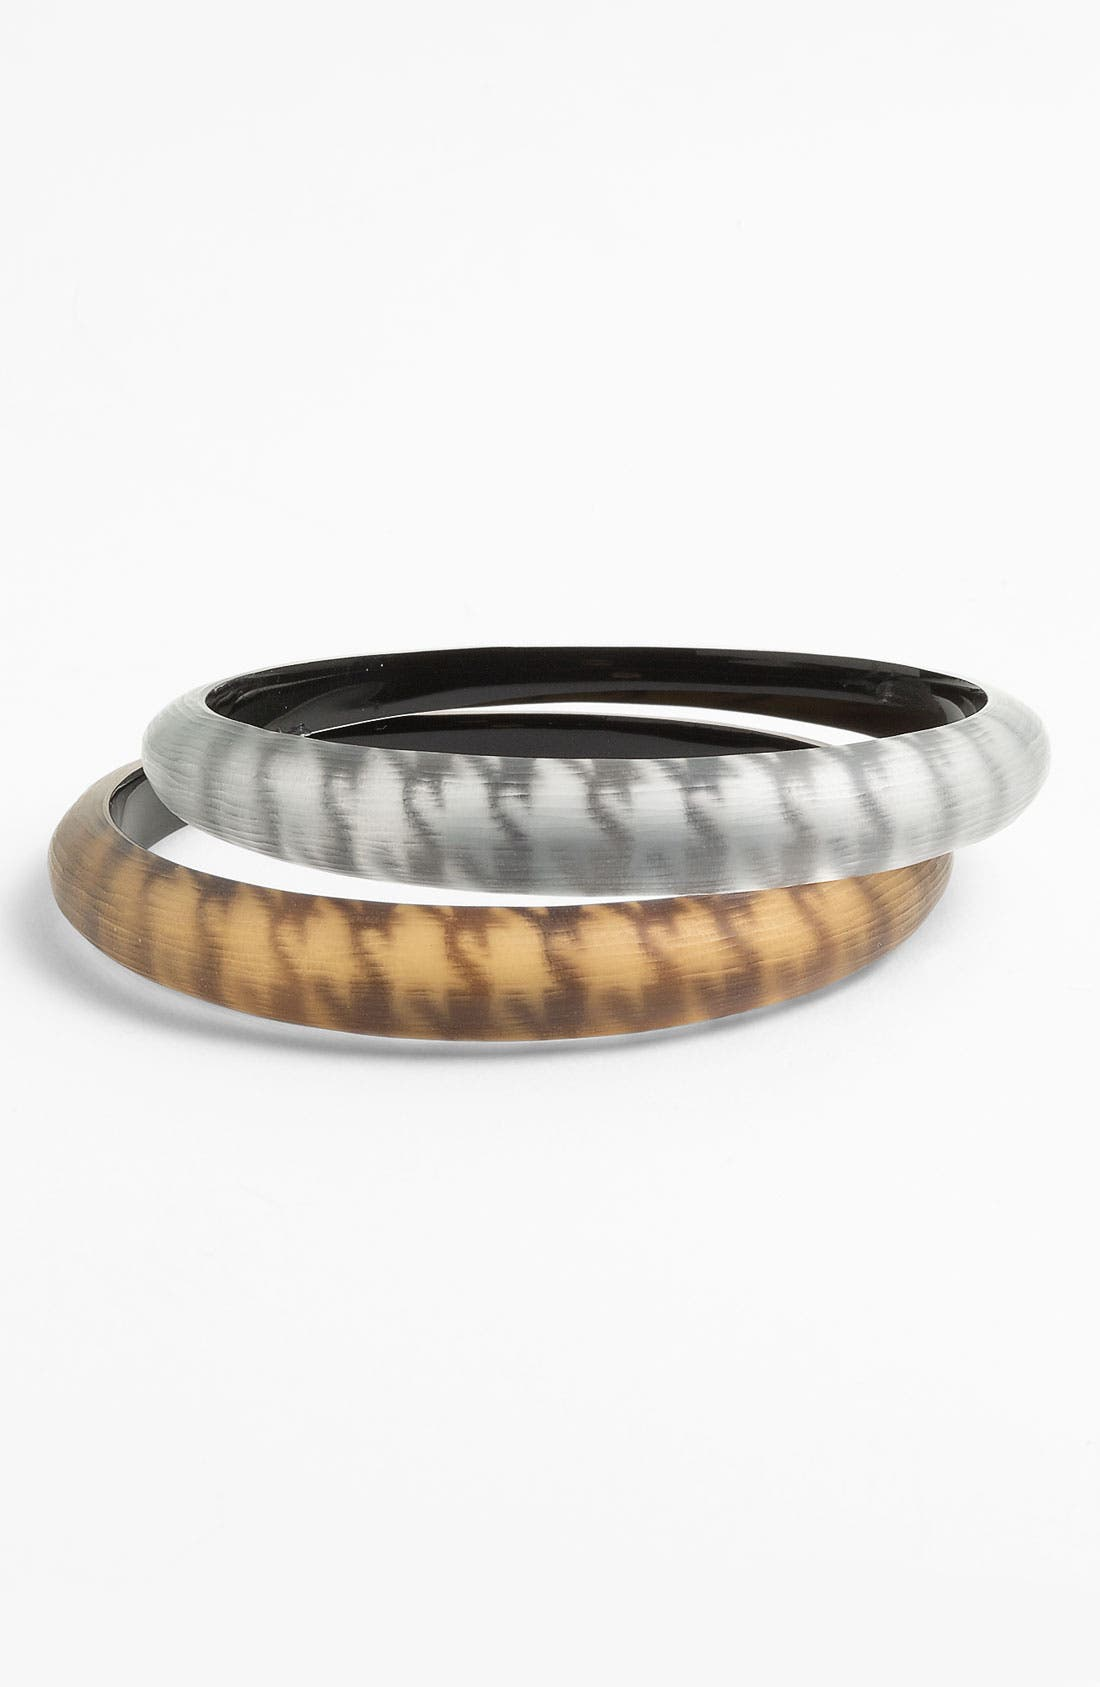 Main Image - Alexis Bittar 'Houndstooth' Skinny Tapered Bangle (Nordstrom Exclusive)